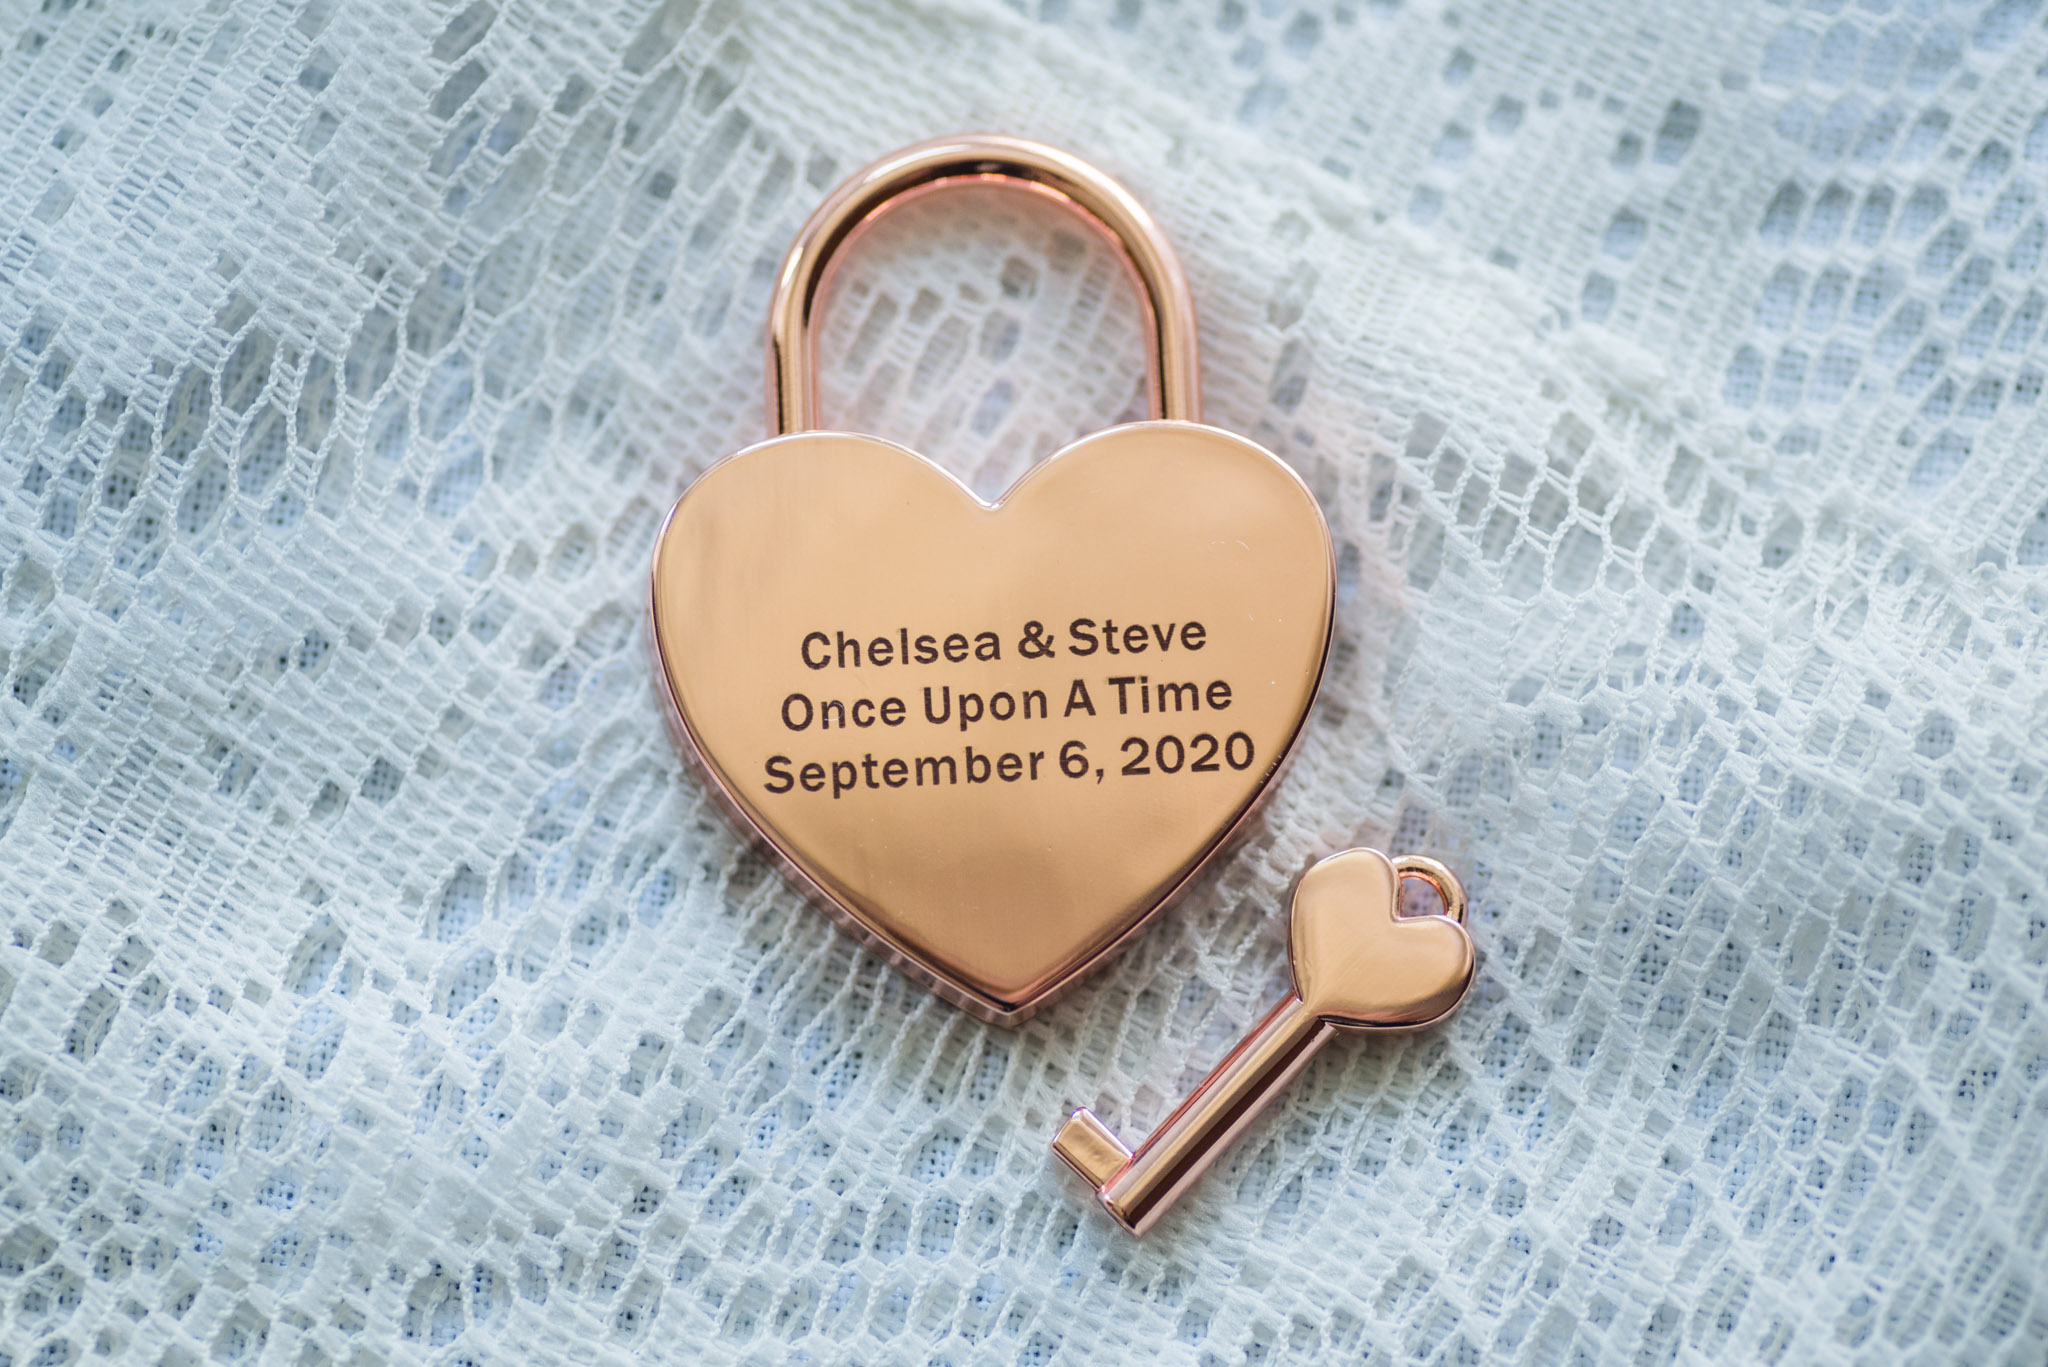 wedding details with love lock, chamberlins ole forest inn wedding